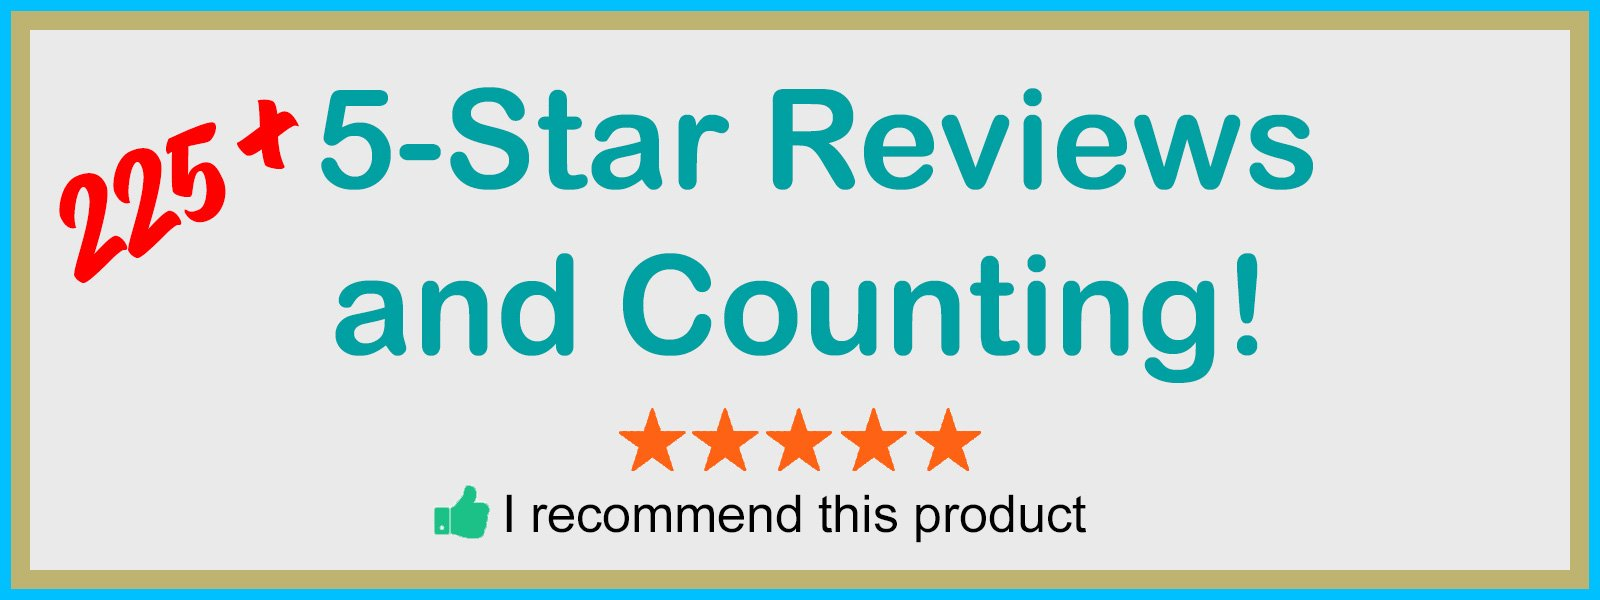 Caravan Cover 5-Star Reviews